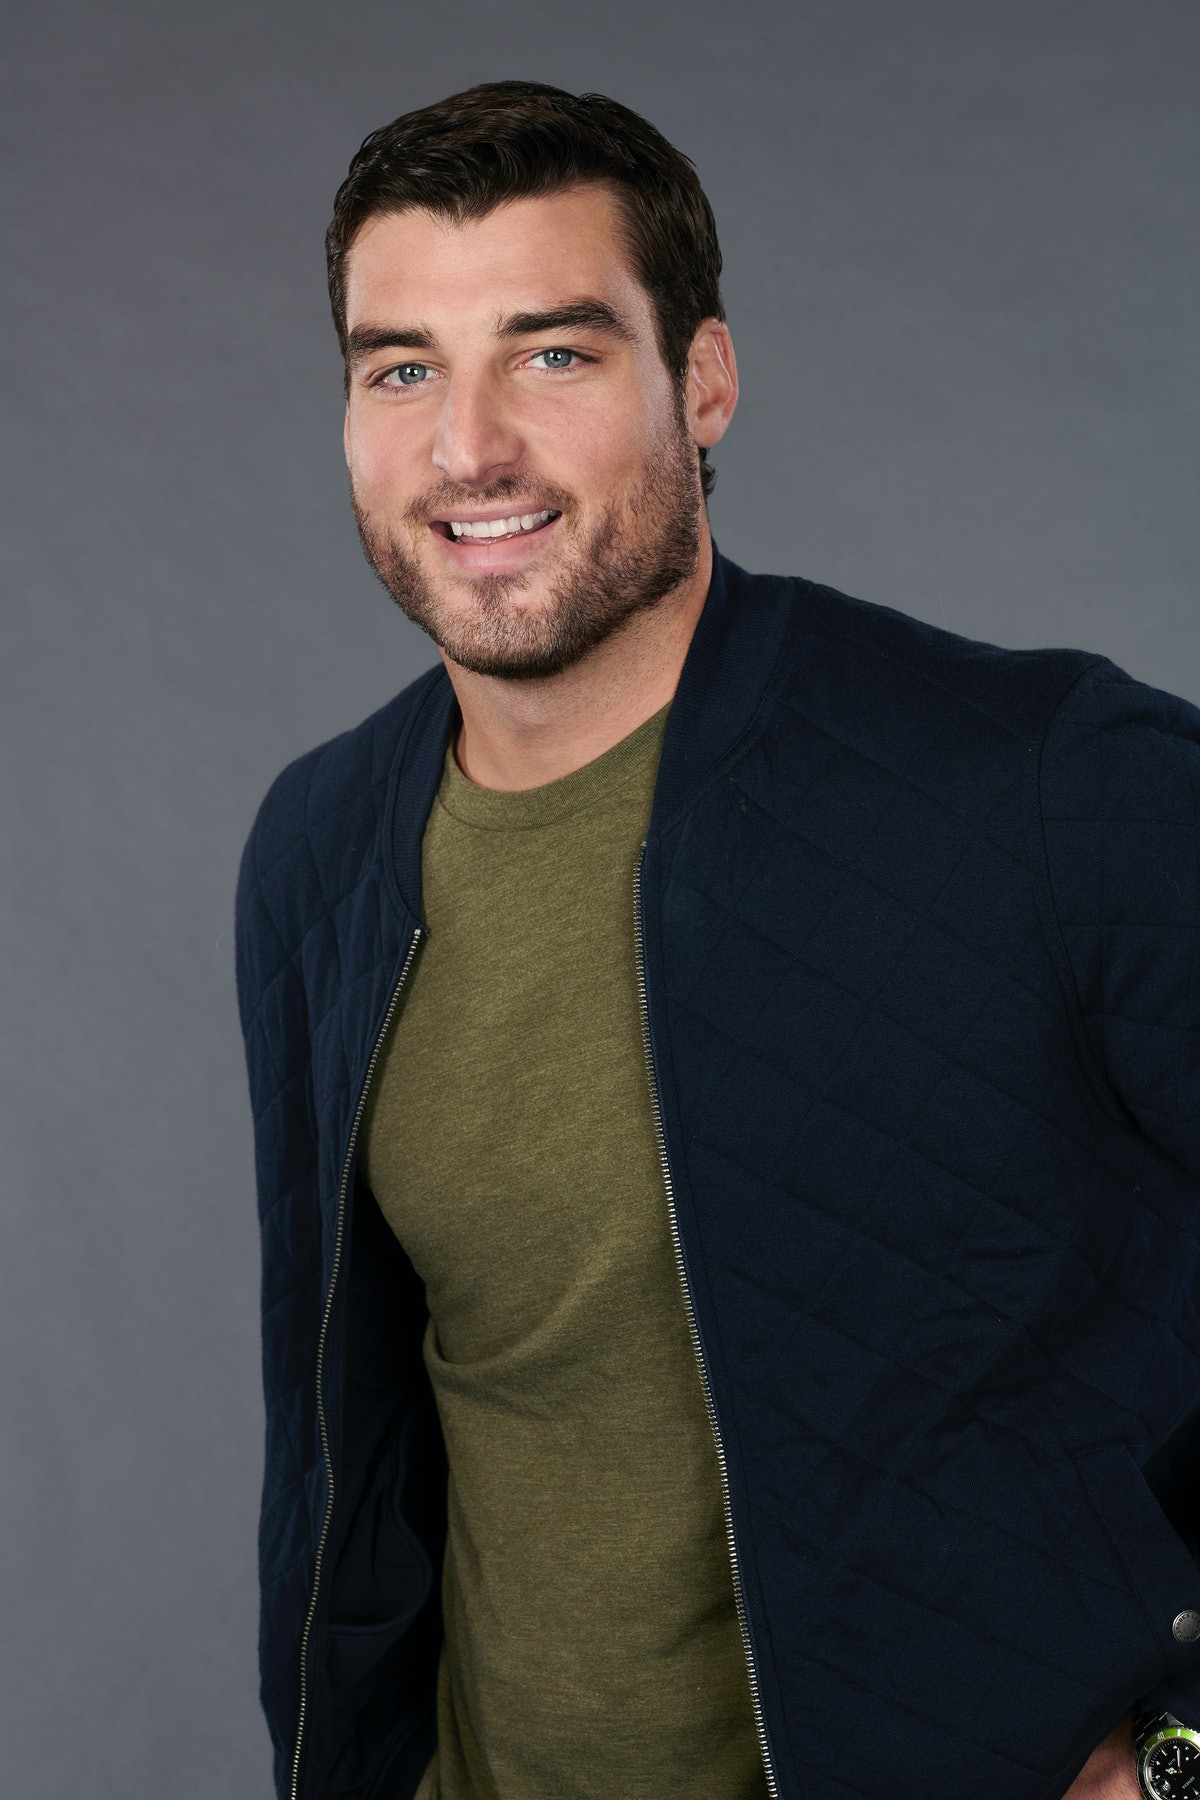 Tweets About Tyler G. Show 'Bachelorette' Fans Are Convinced He's Jared Haibon 2.0